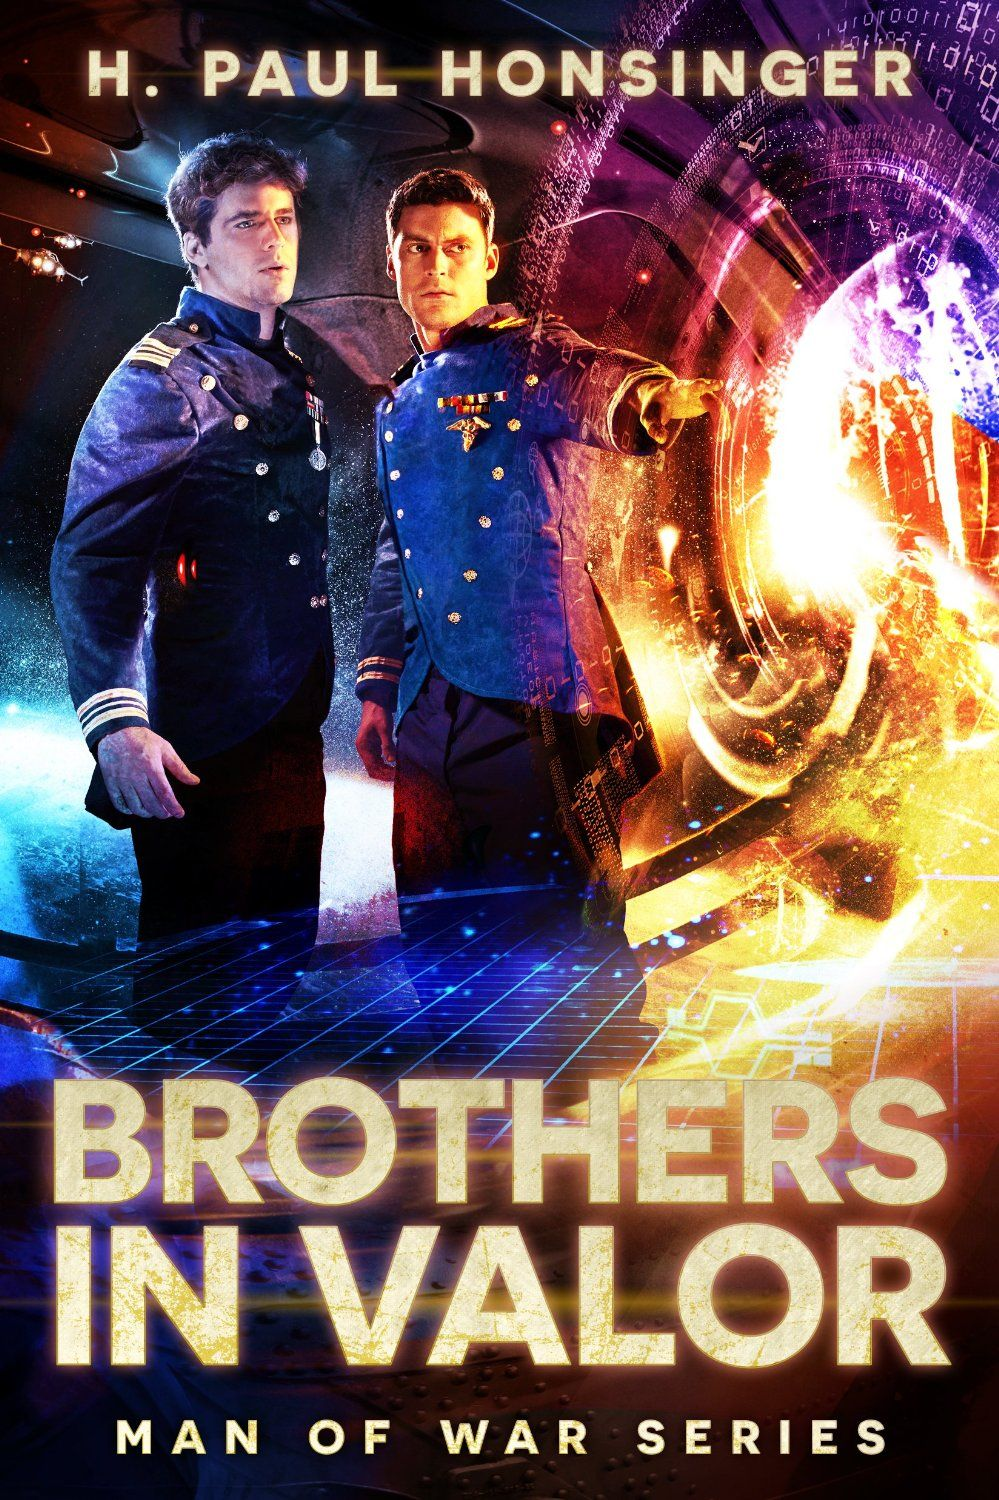 Amazon.com: Brothers in Valor (Man of War Book 3) eBook: H. Paul Honsinger: Kindle Store